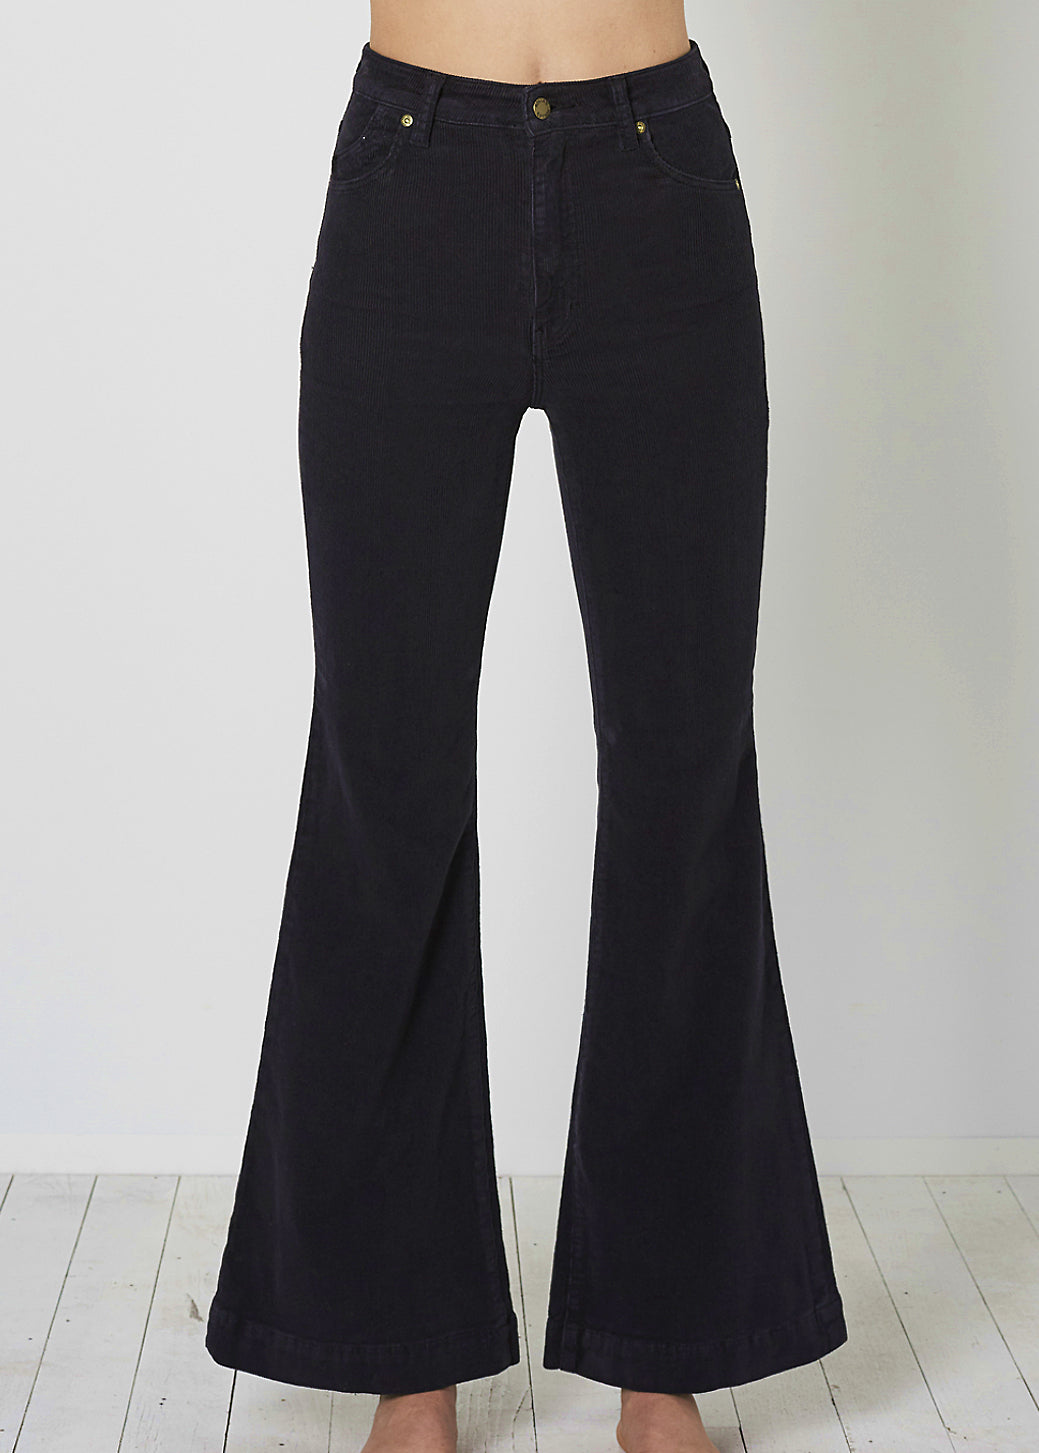 Washed Black/Charcoal Cord Eastcoast Flares